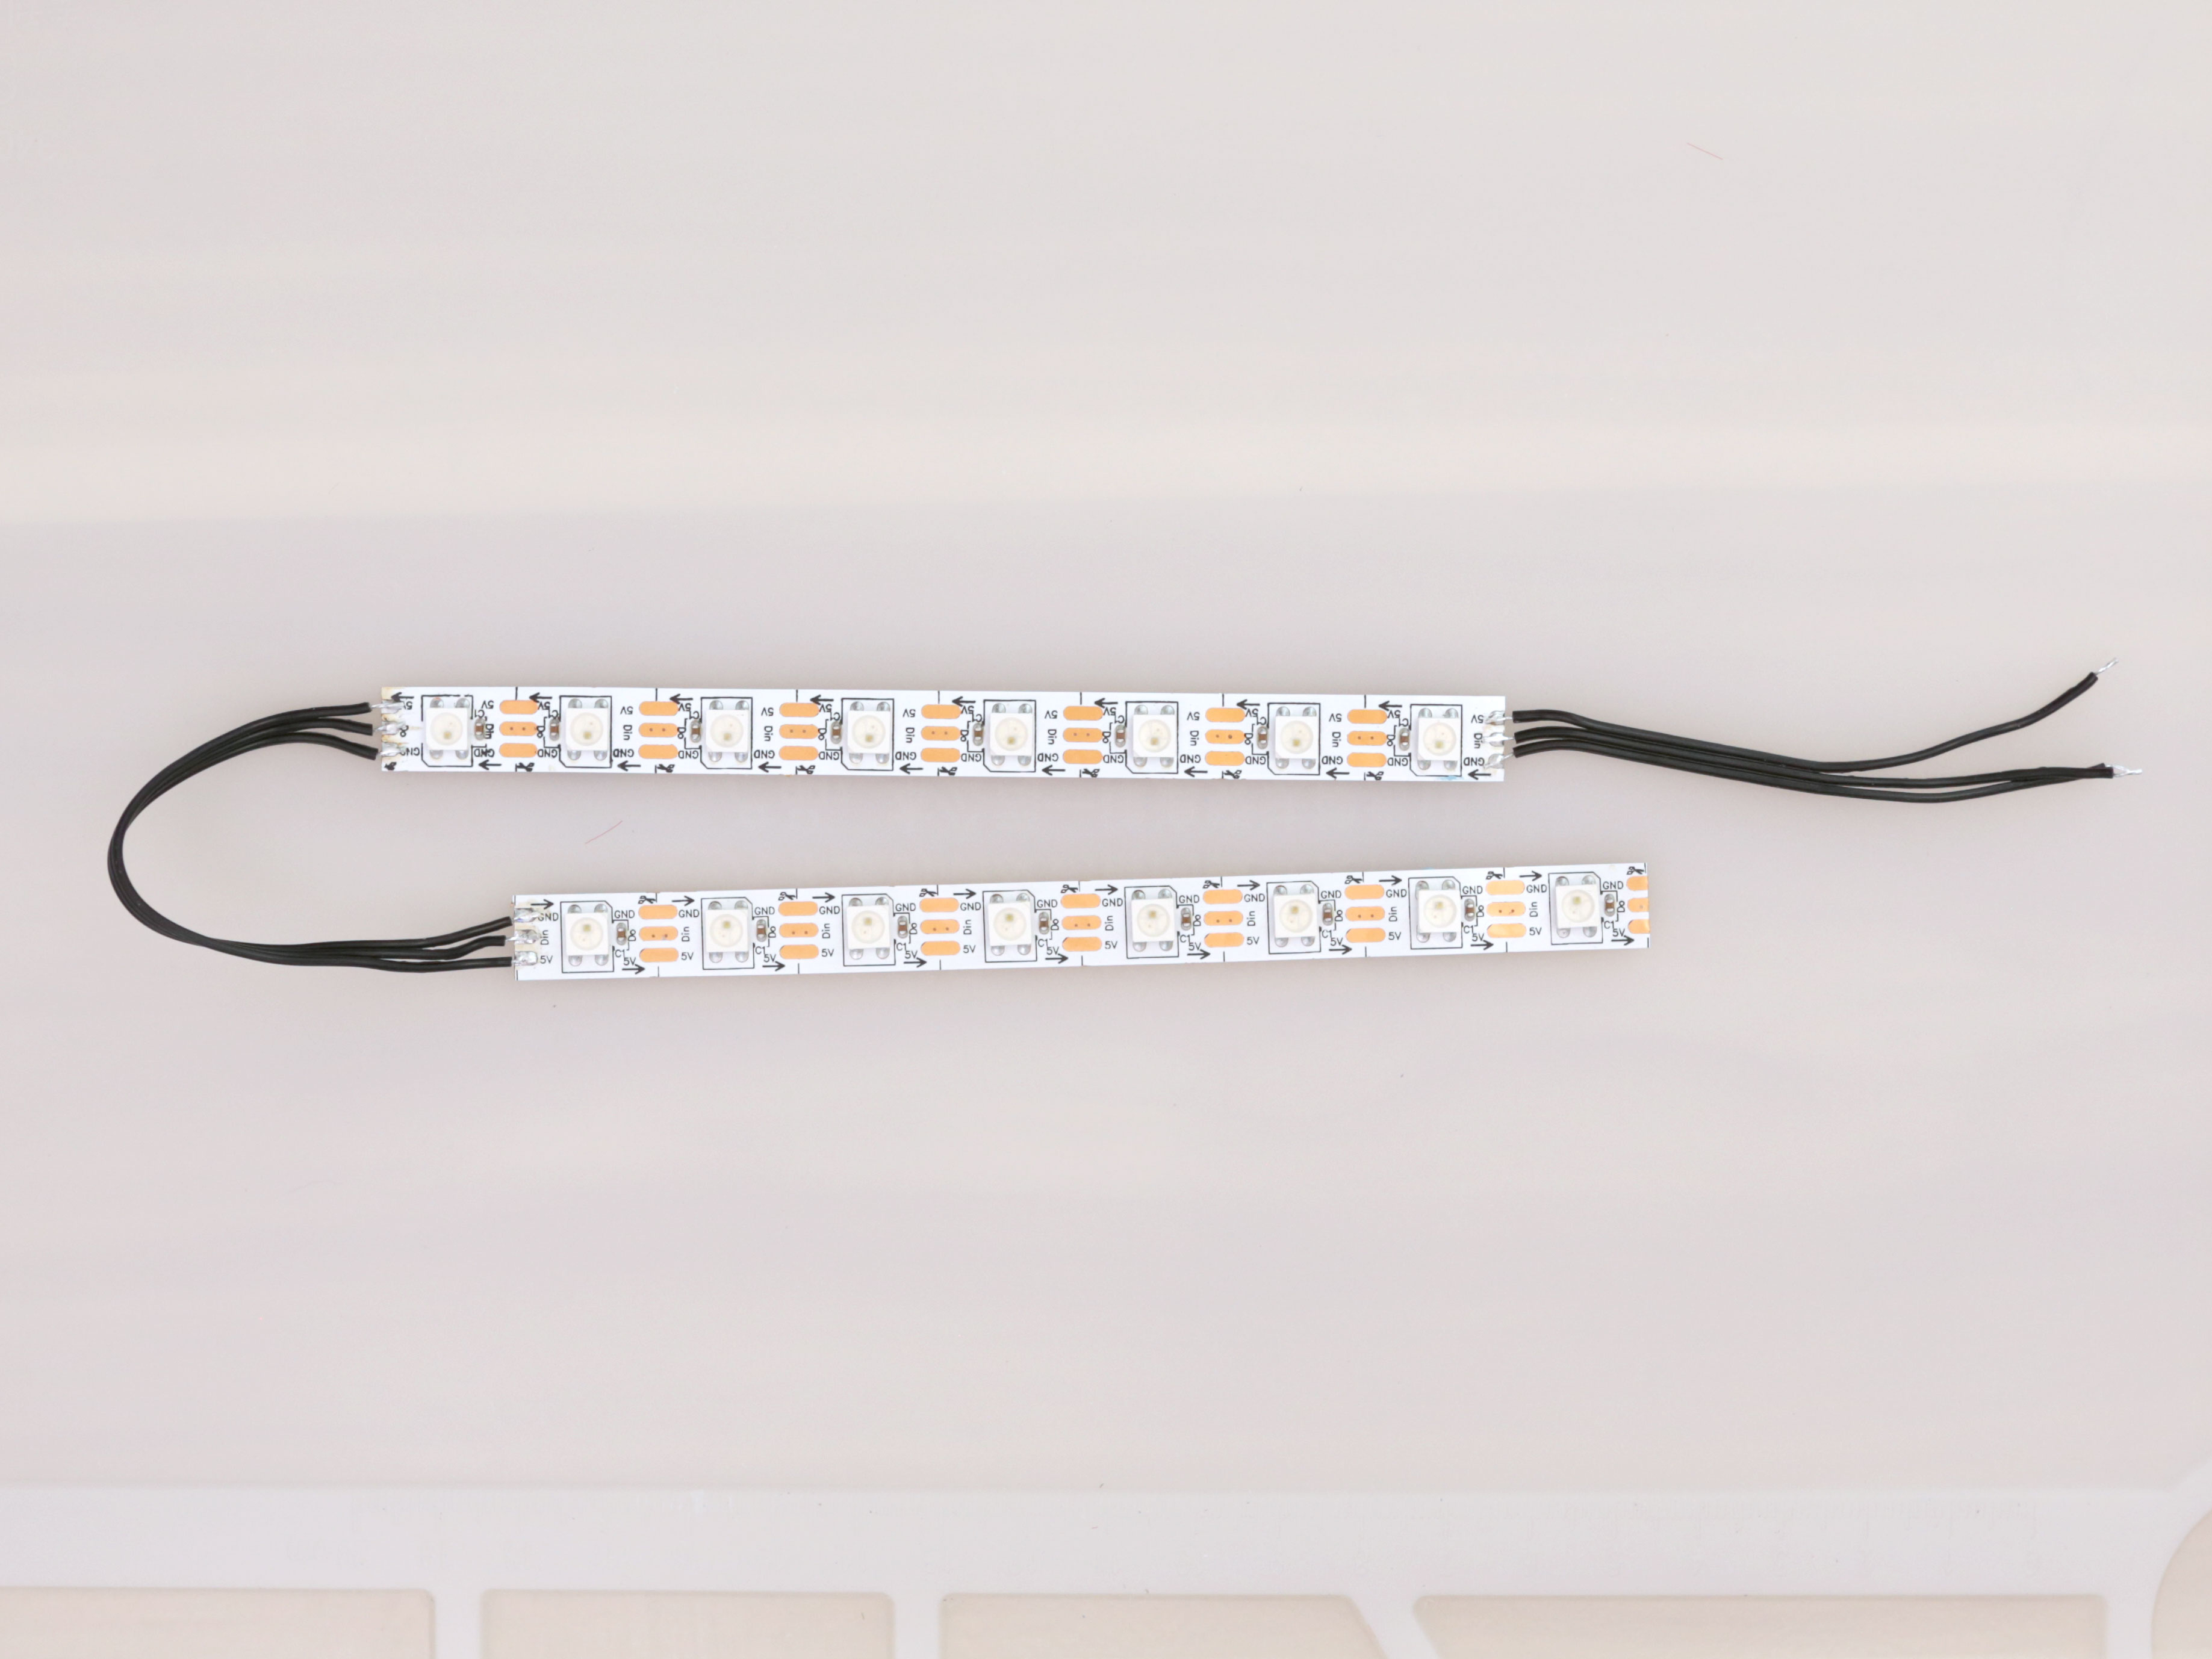 led_strips_strips-wired.jpg